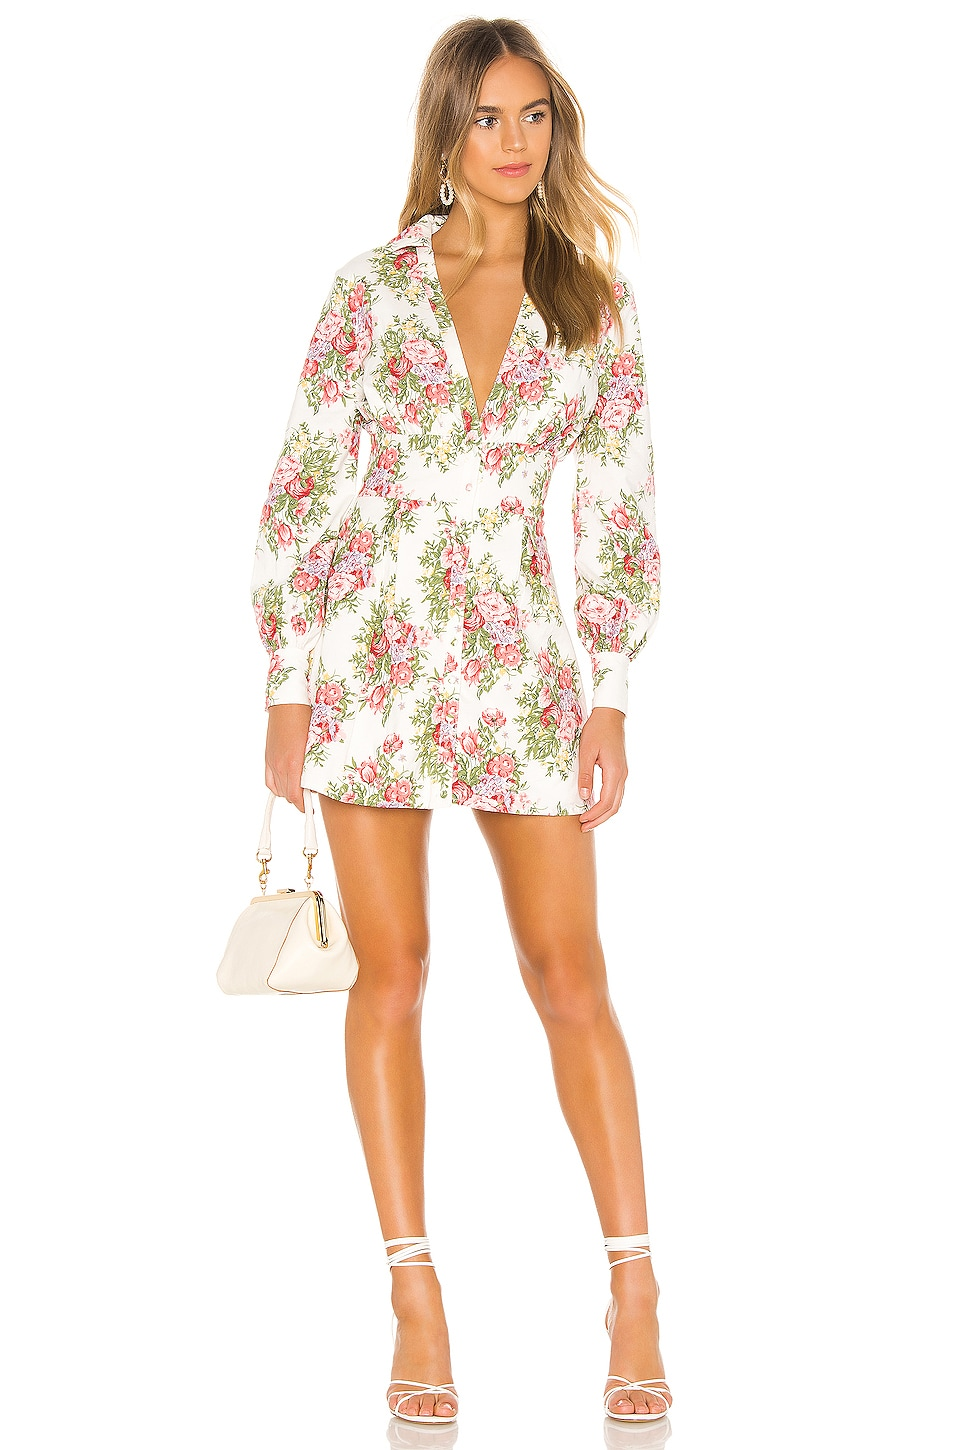 MAJORELLE Liam Mini Dress in Vineyard Multi